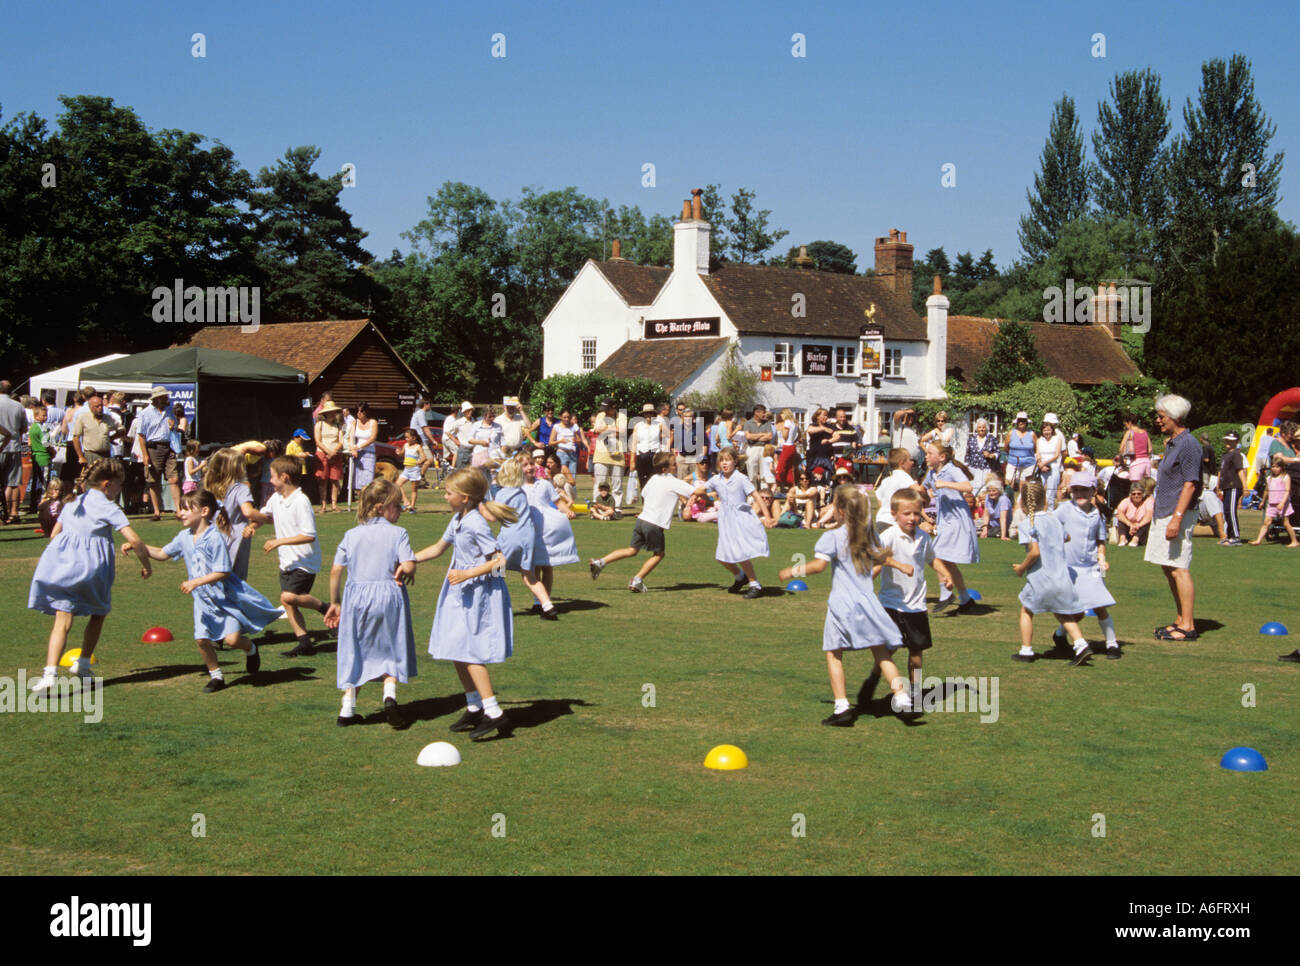 TILFORD VILLAGE SUMMER FETE with children country dancing on a village green. Tilford Surrey England UK Britain - Stock Image